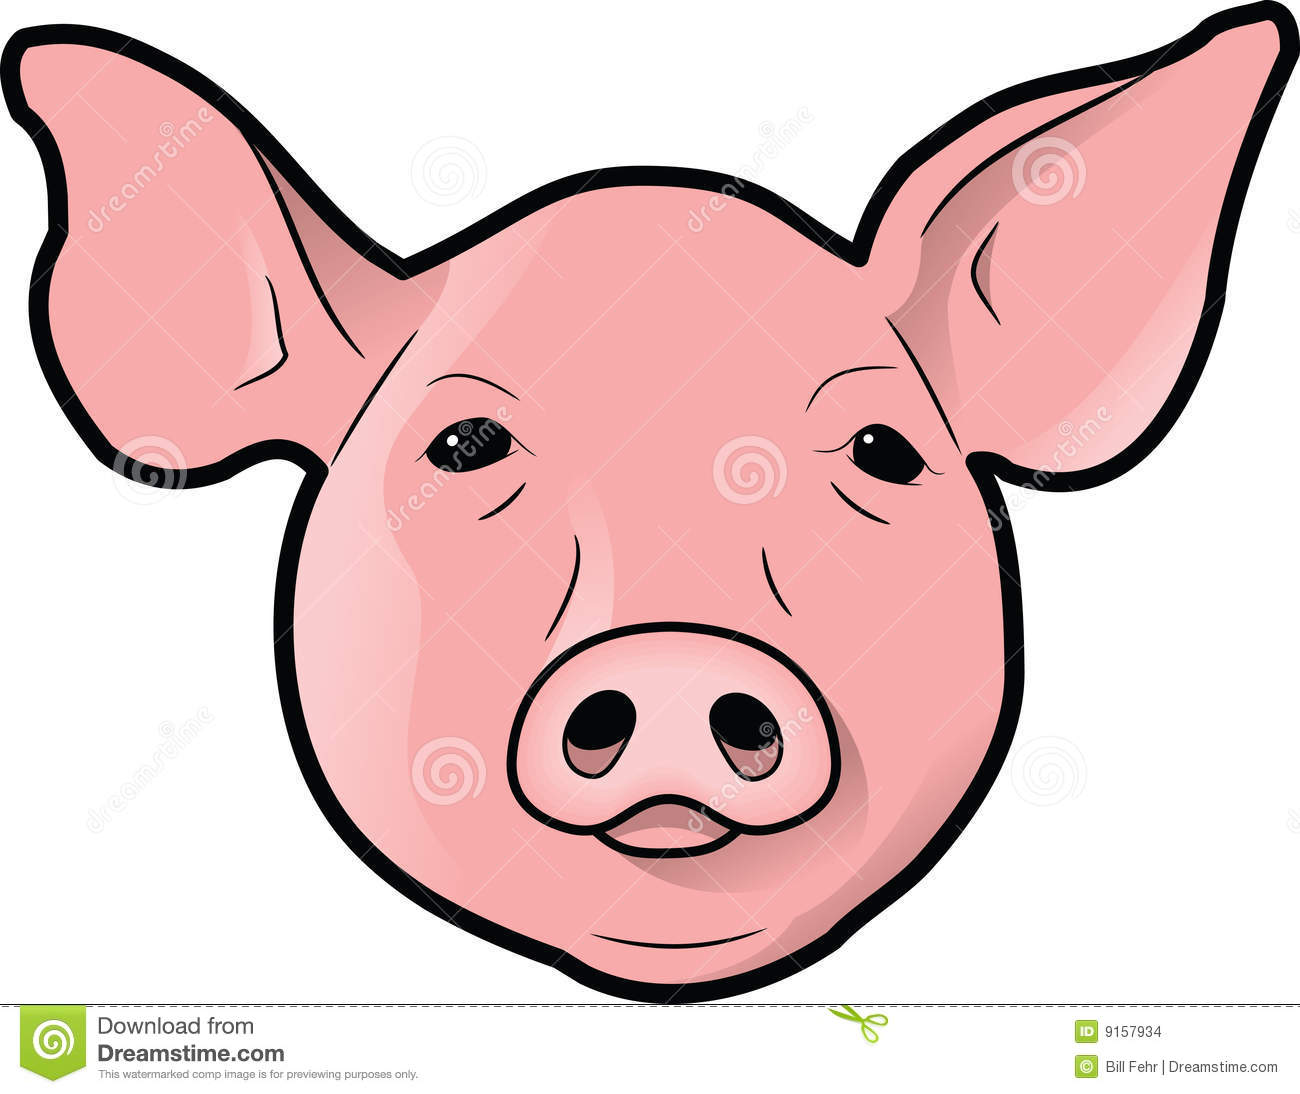 Cartoon pig head on a stick - photo#10